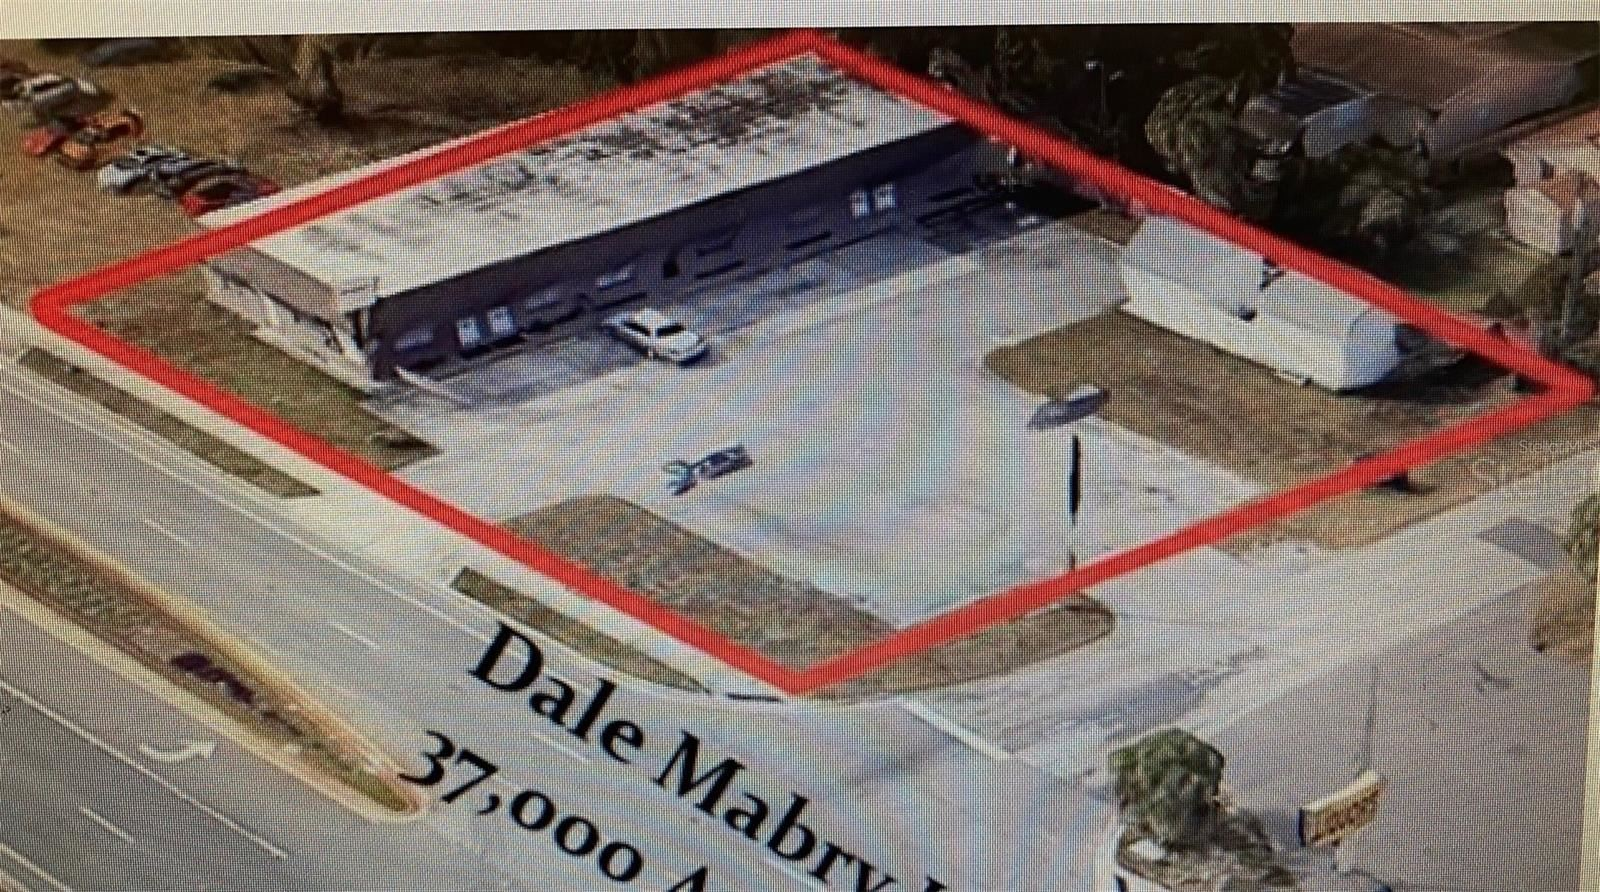 6205 S DALE MABRY HIGHWAY #A, Tampa, FL 33611 - MLS#: T3309153